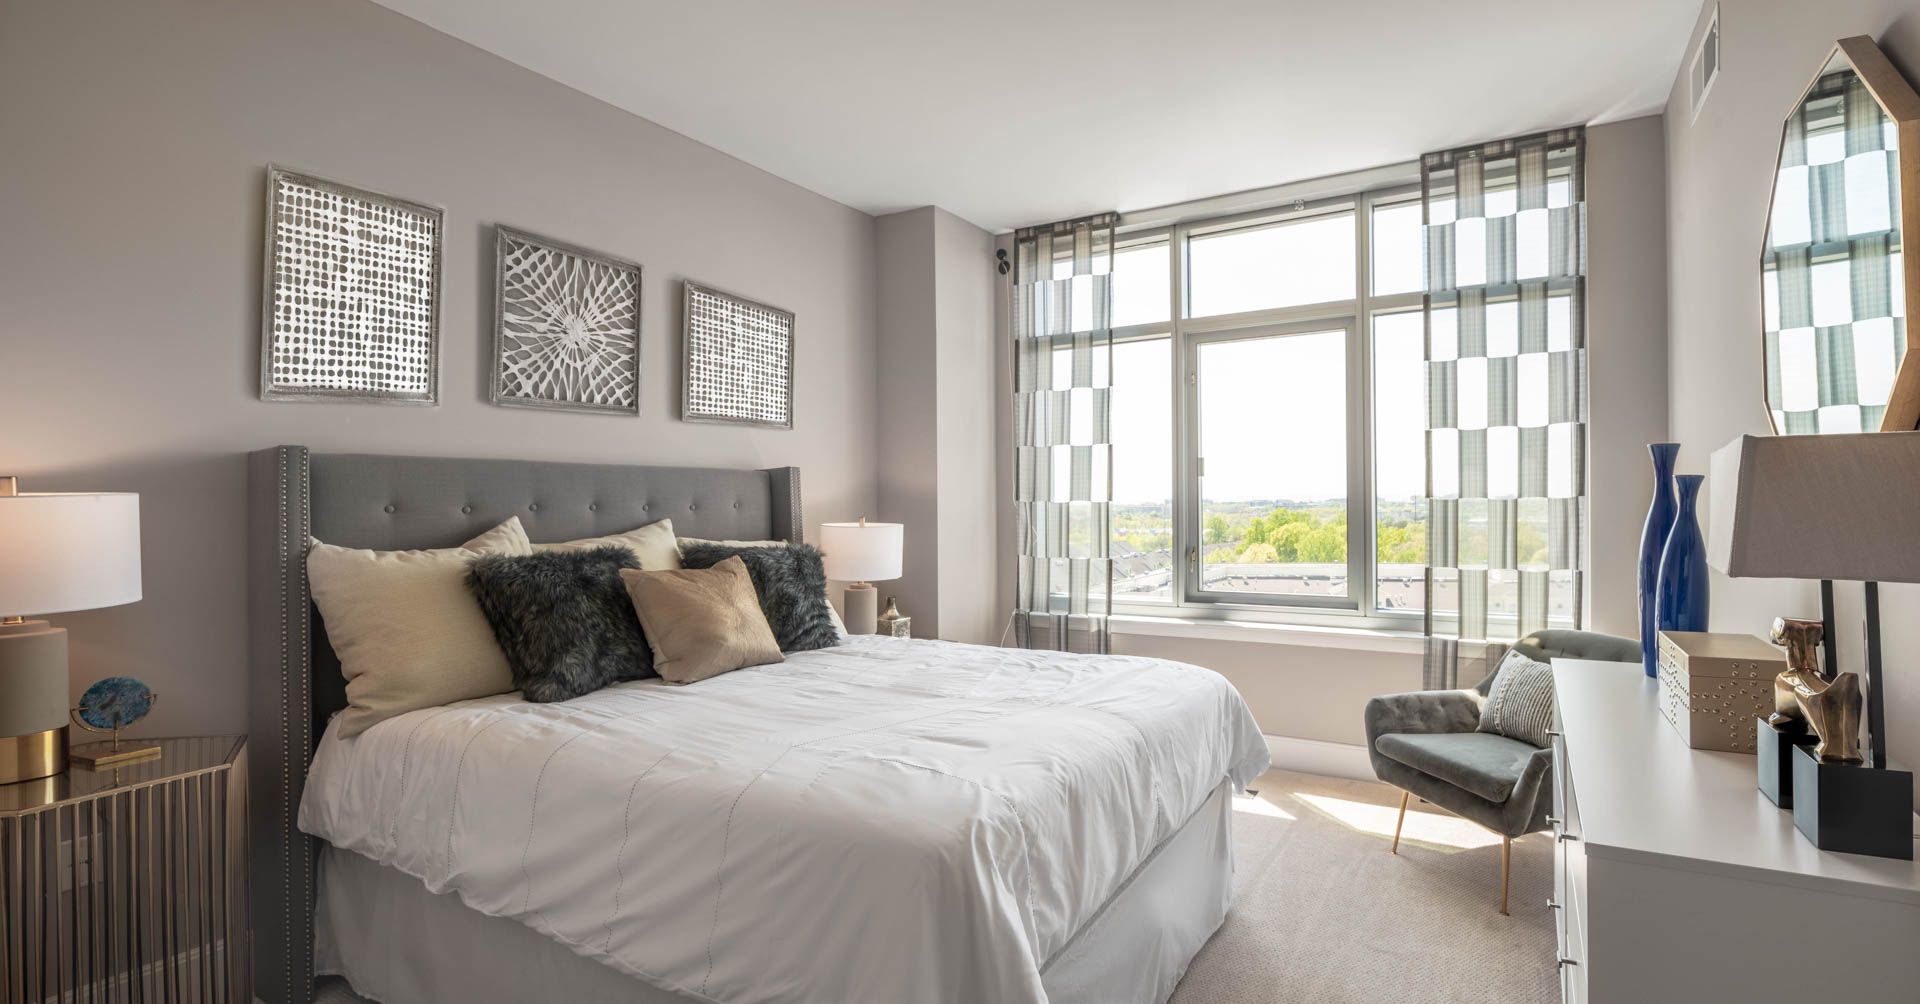 Spacious bedroom with king bed, tasteful dresser and large window with view of treetops